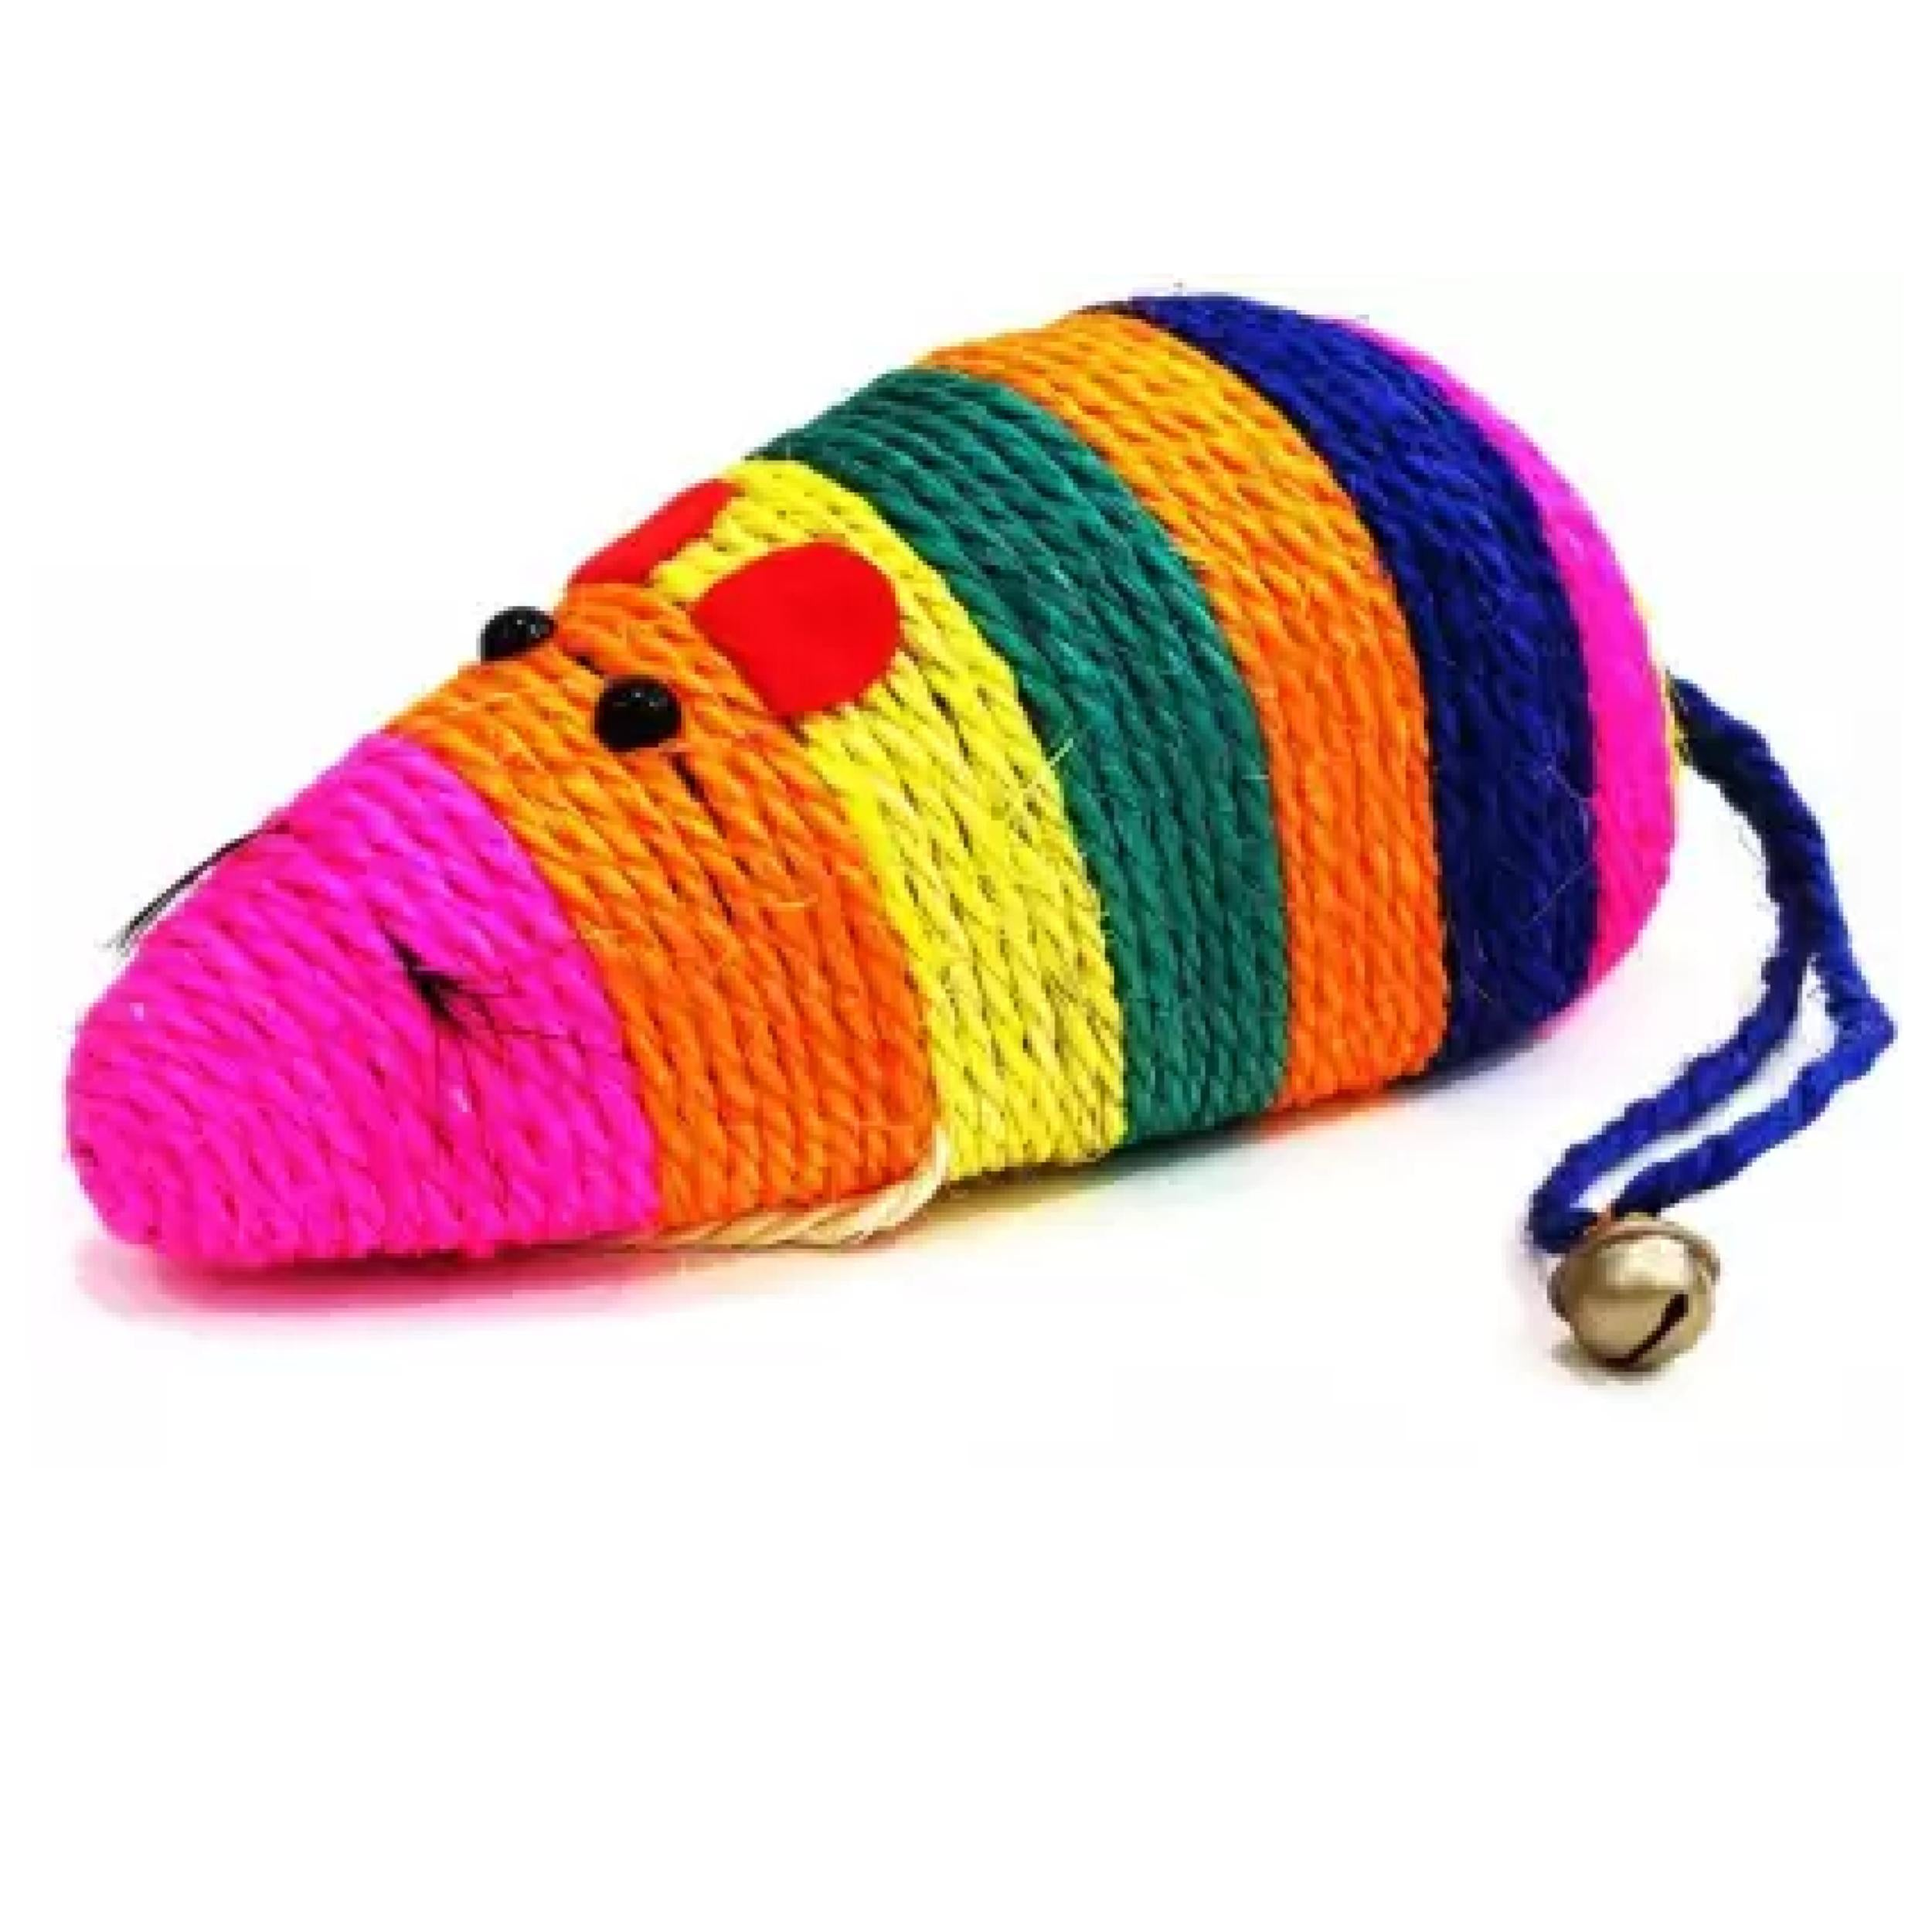 Multi color sisal mouse shaped cat toy - Poochles